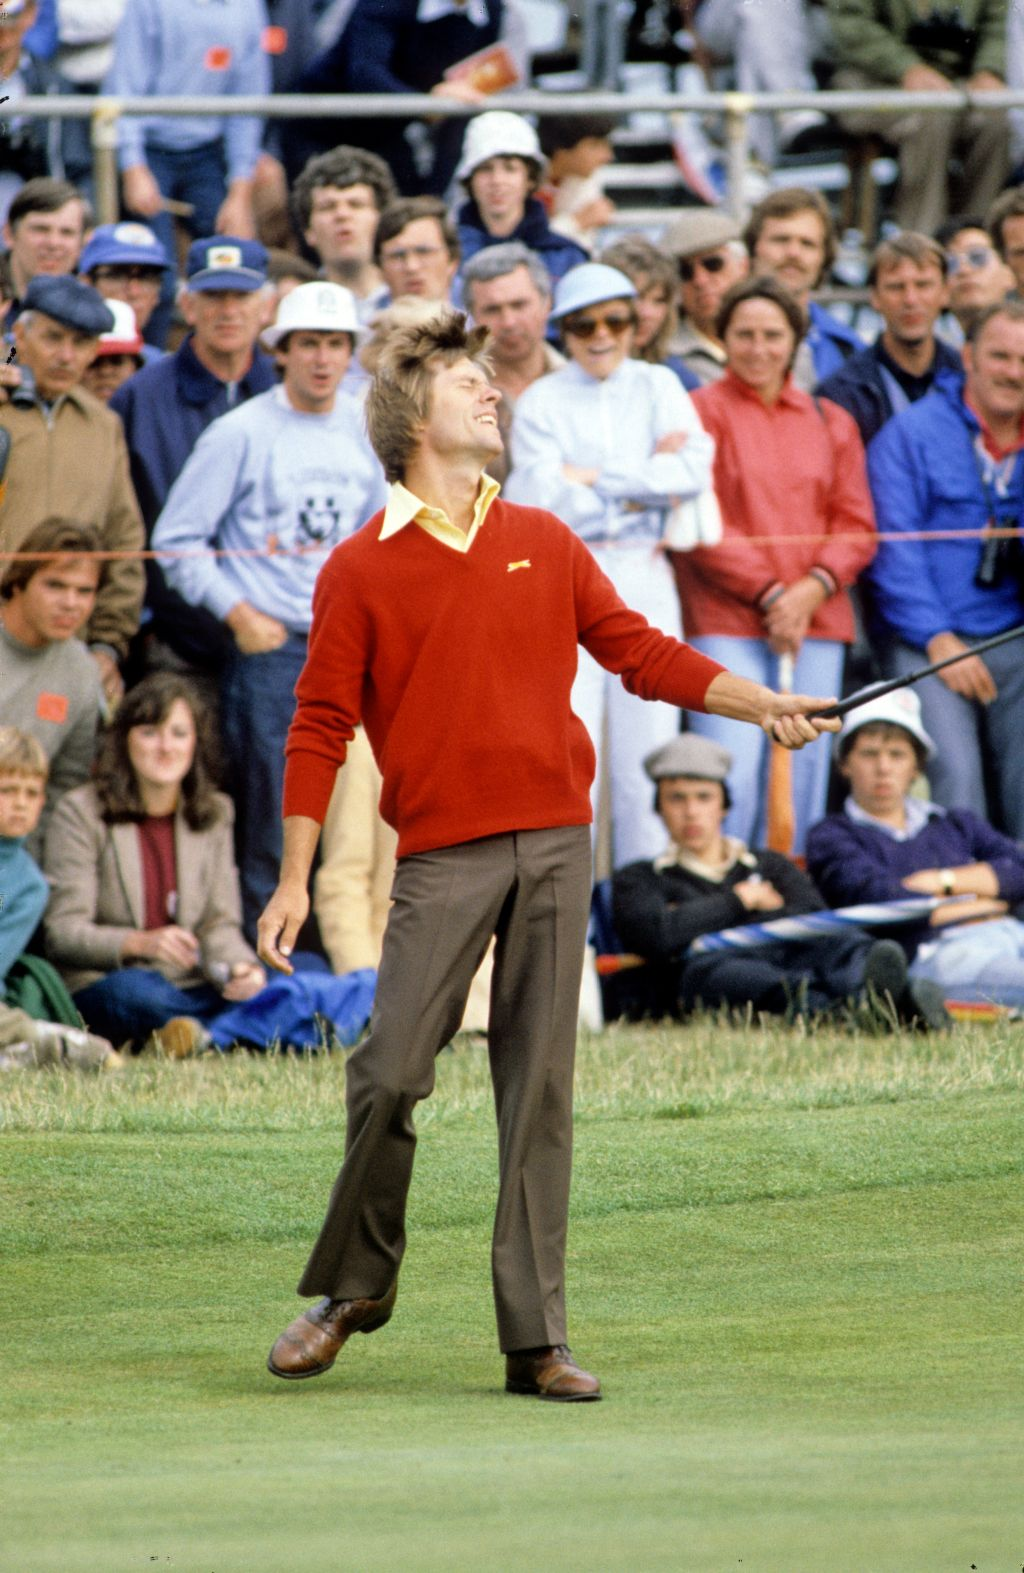 Bill Rogers showing his emotion on the green on his way to winning the 1981 Open Championship